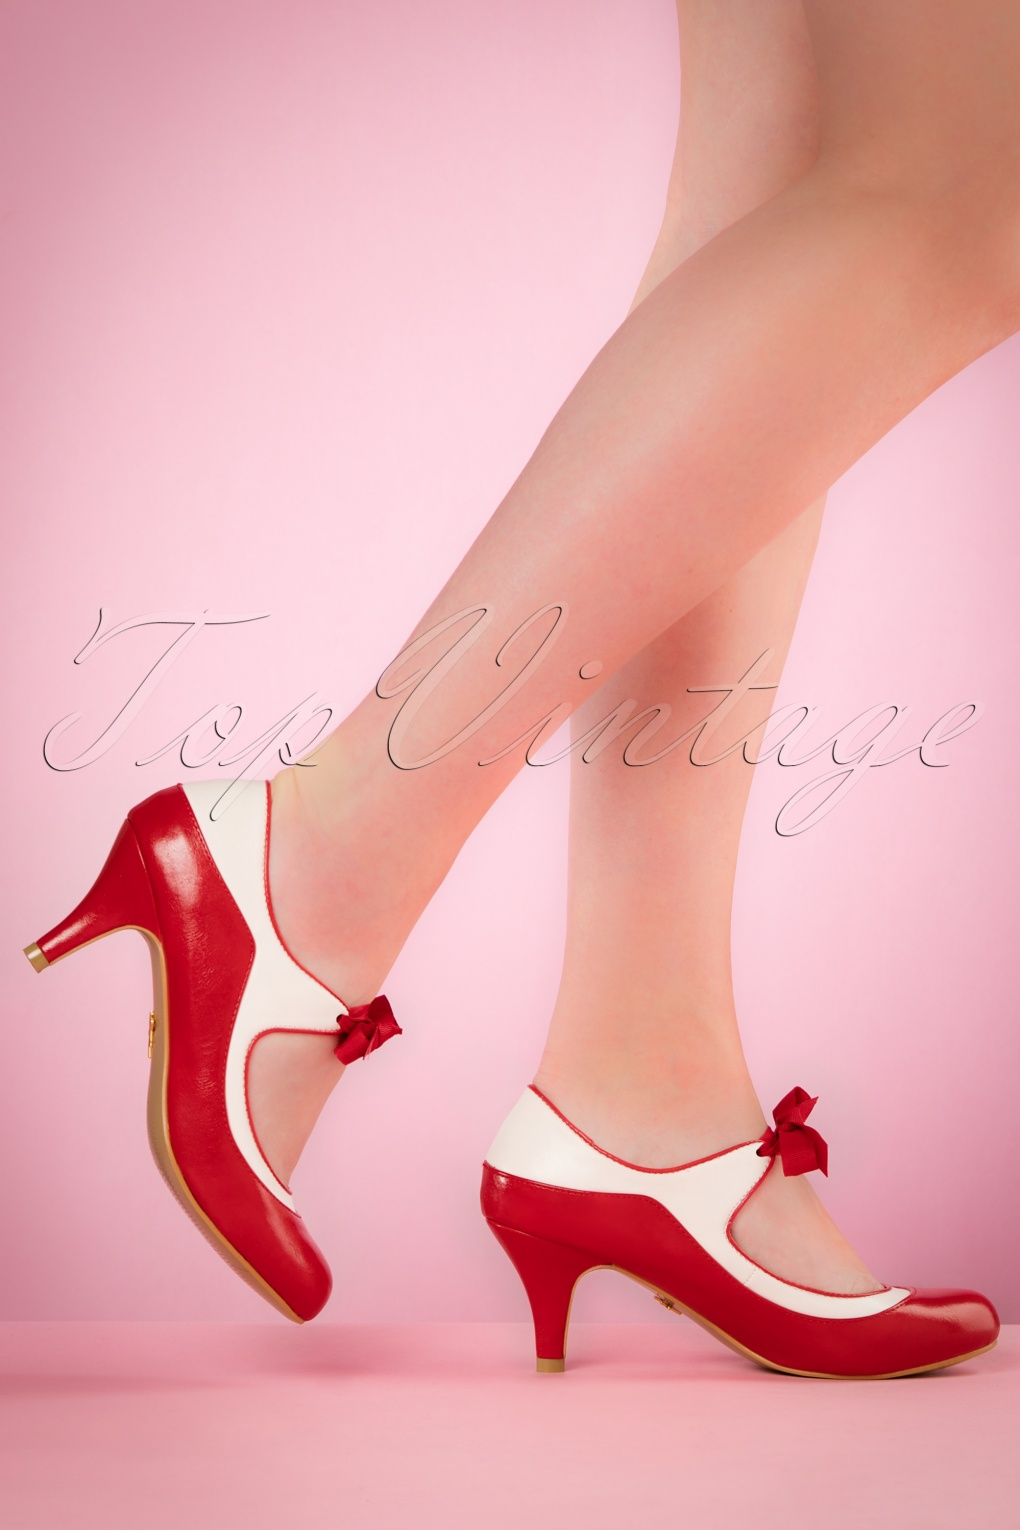 Vintage Style Shoes, Vintage Inspired Shoes 50s Jeannie Pumps in Red and White £43.78 AT vintagedancer.com